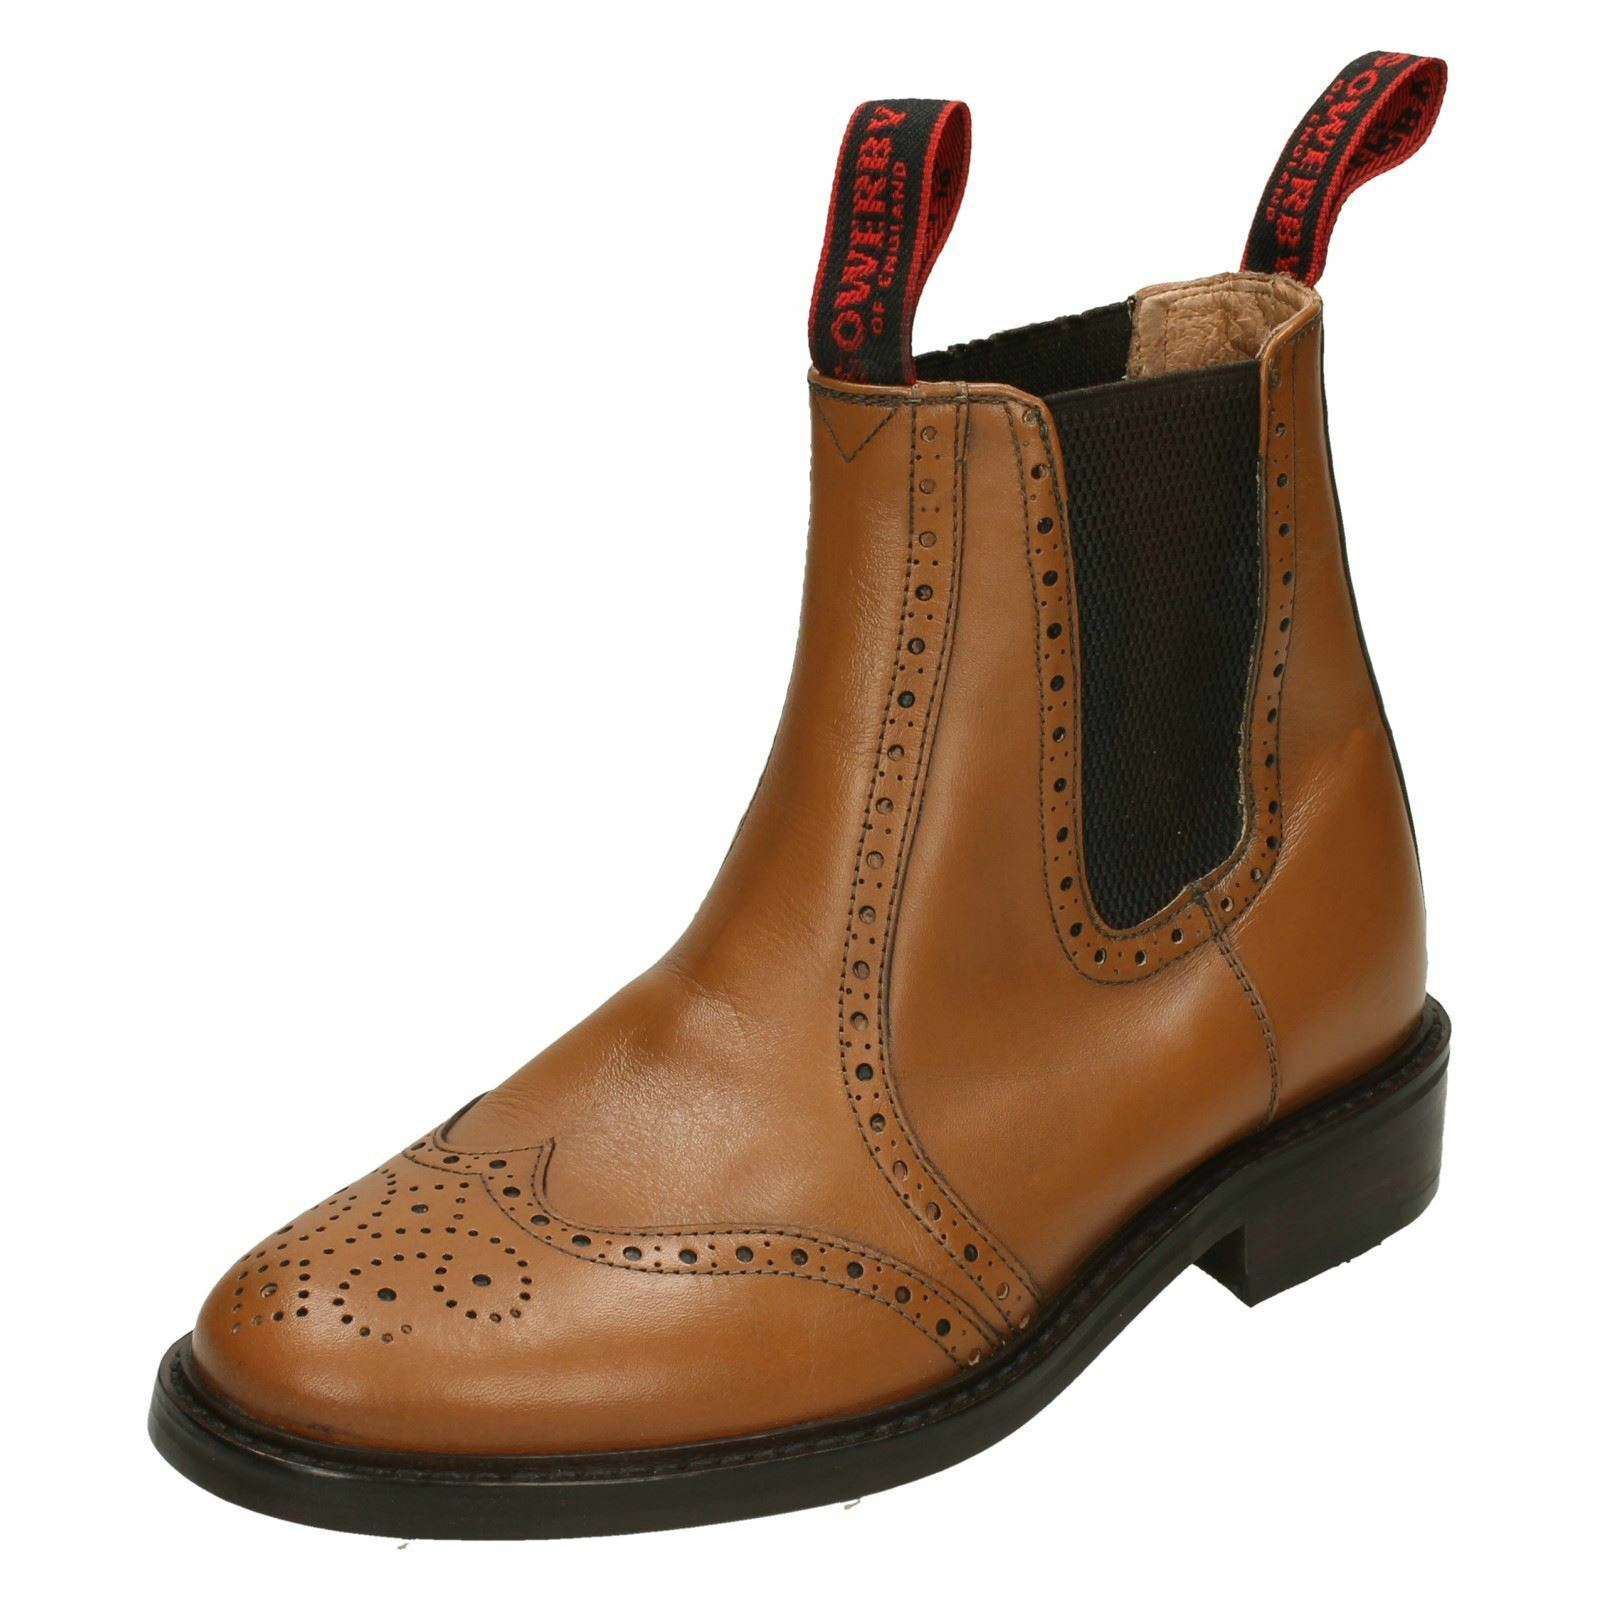 Mens Sowerby All Leather Chelsea Boot With Brogue Detail 'Appleby'